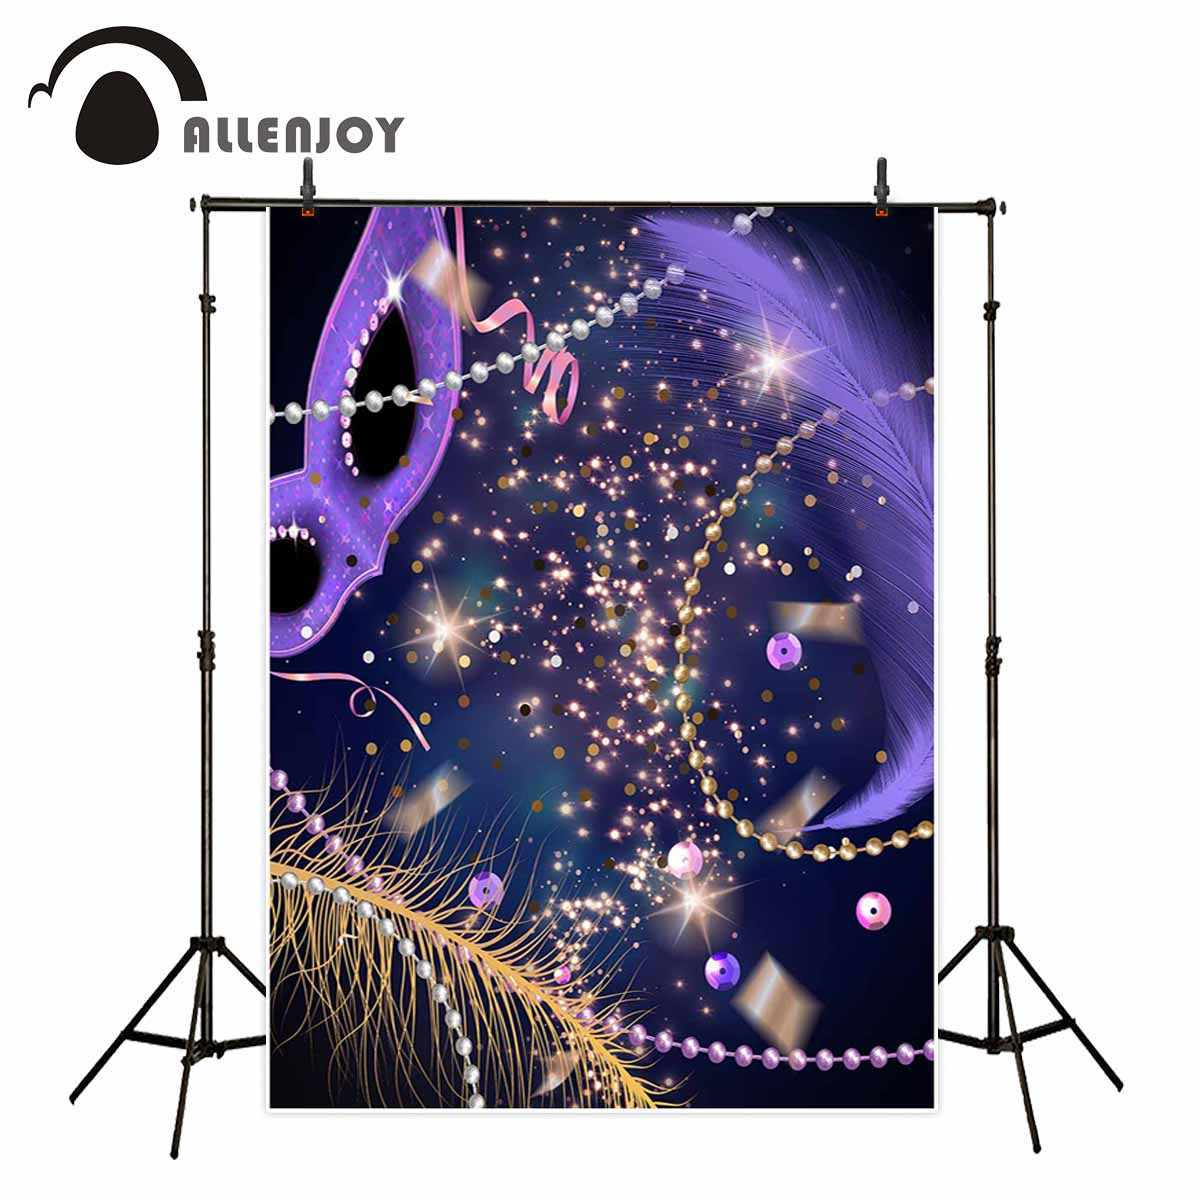 Allenjoy masquerade party purple backdrop jewelry feather shiny gorgeous background fund studio photo new photographic backdrops